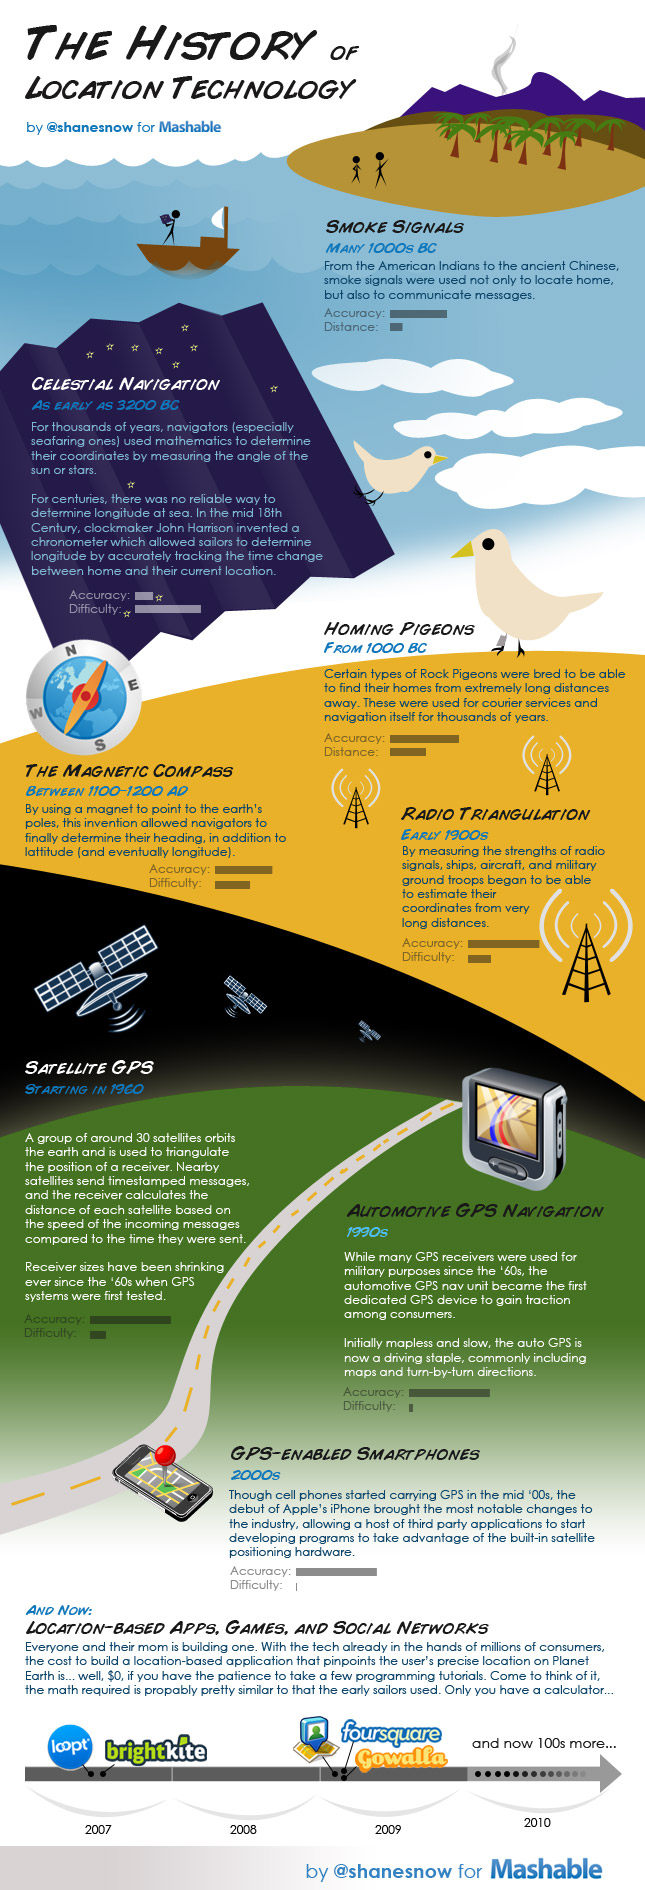 History of location technology